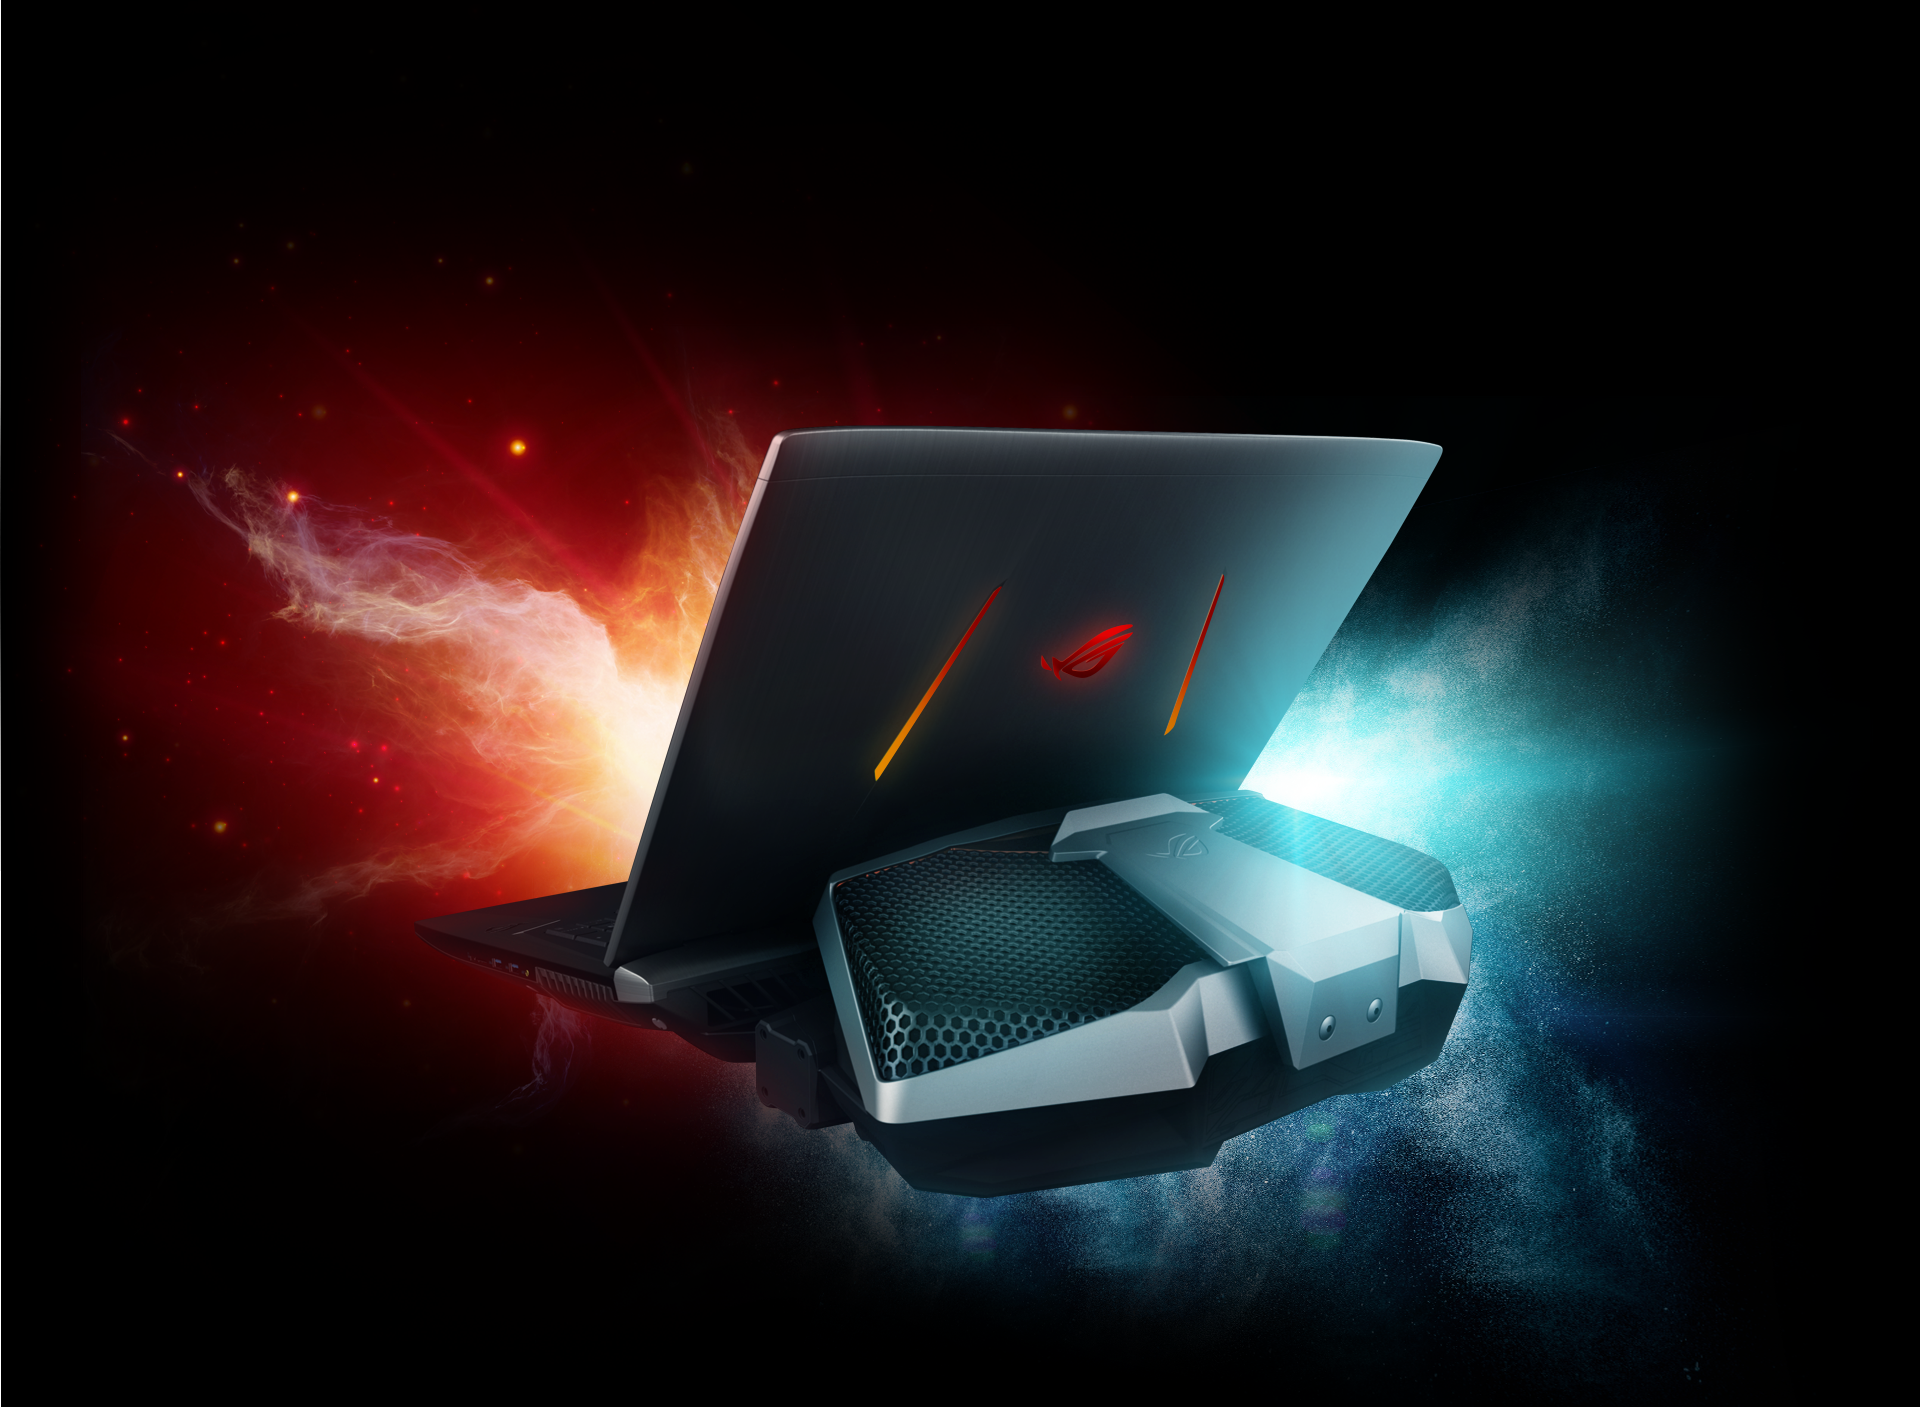 ASUS ROG GX800 is a liquid cooled laptop with the fastest hardware in a gaming notebook